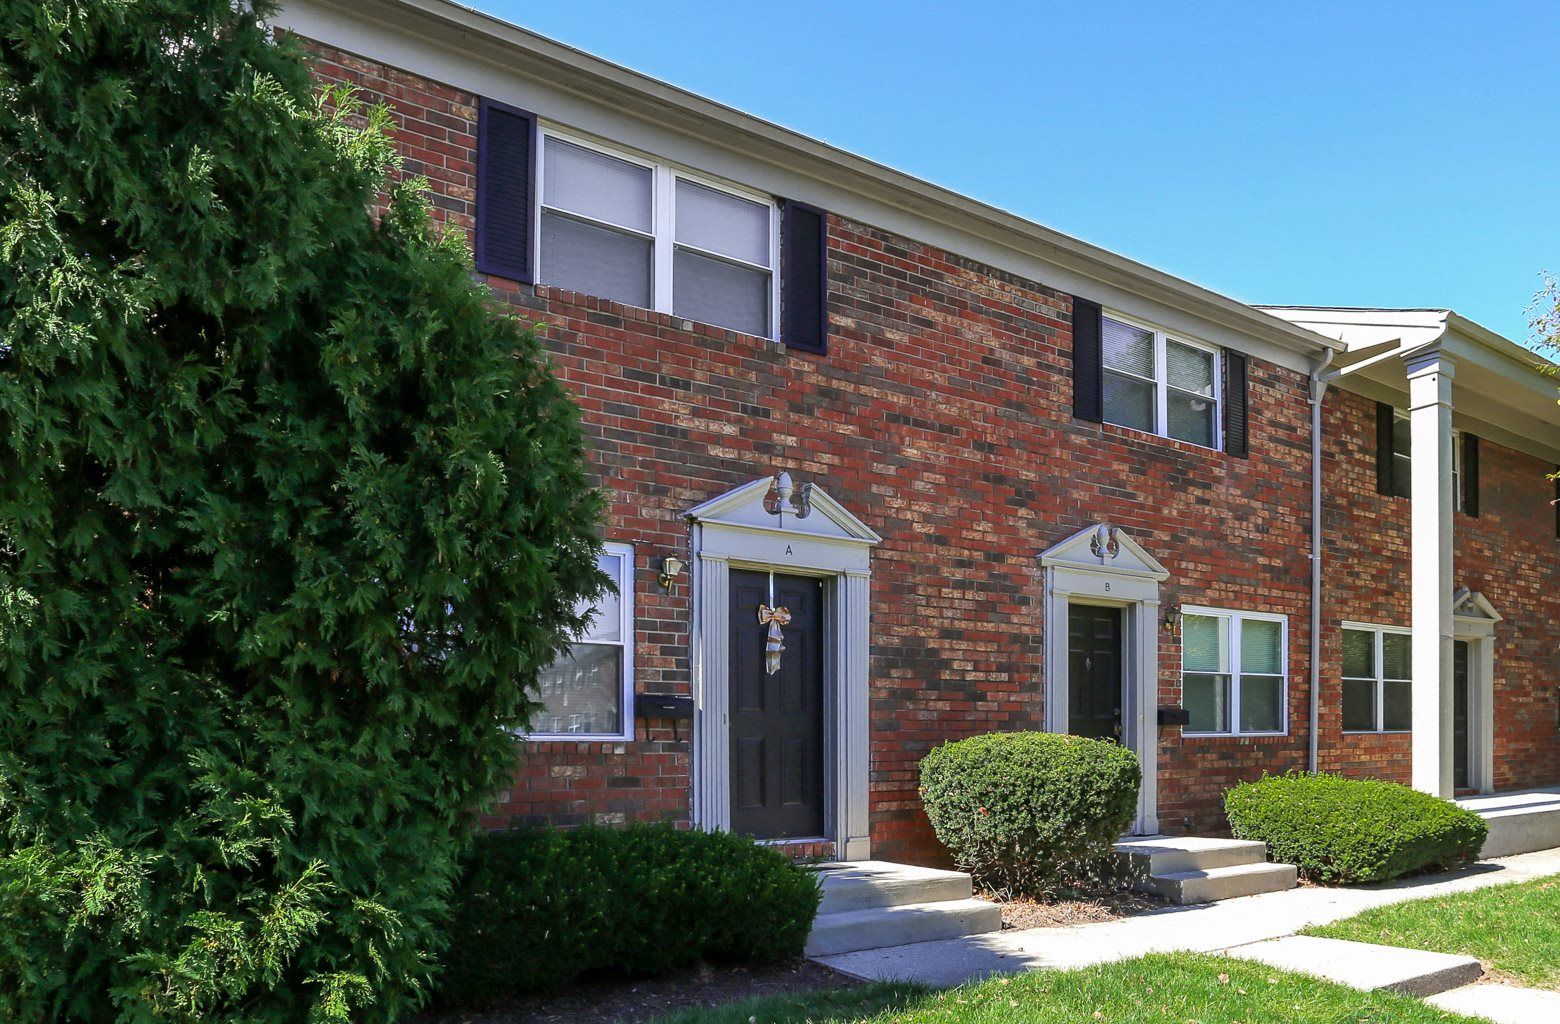 apartments in Fairborn, OH builing